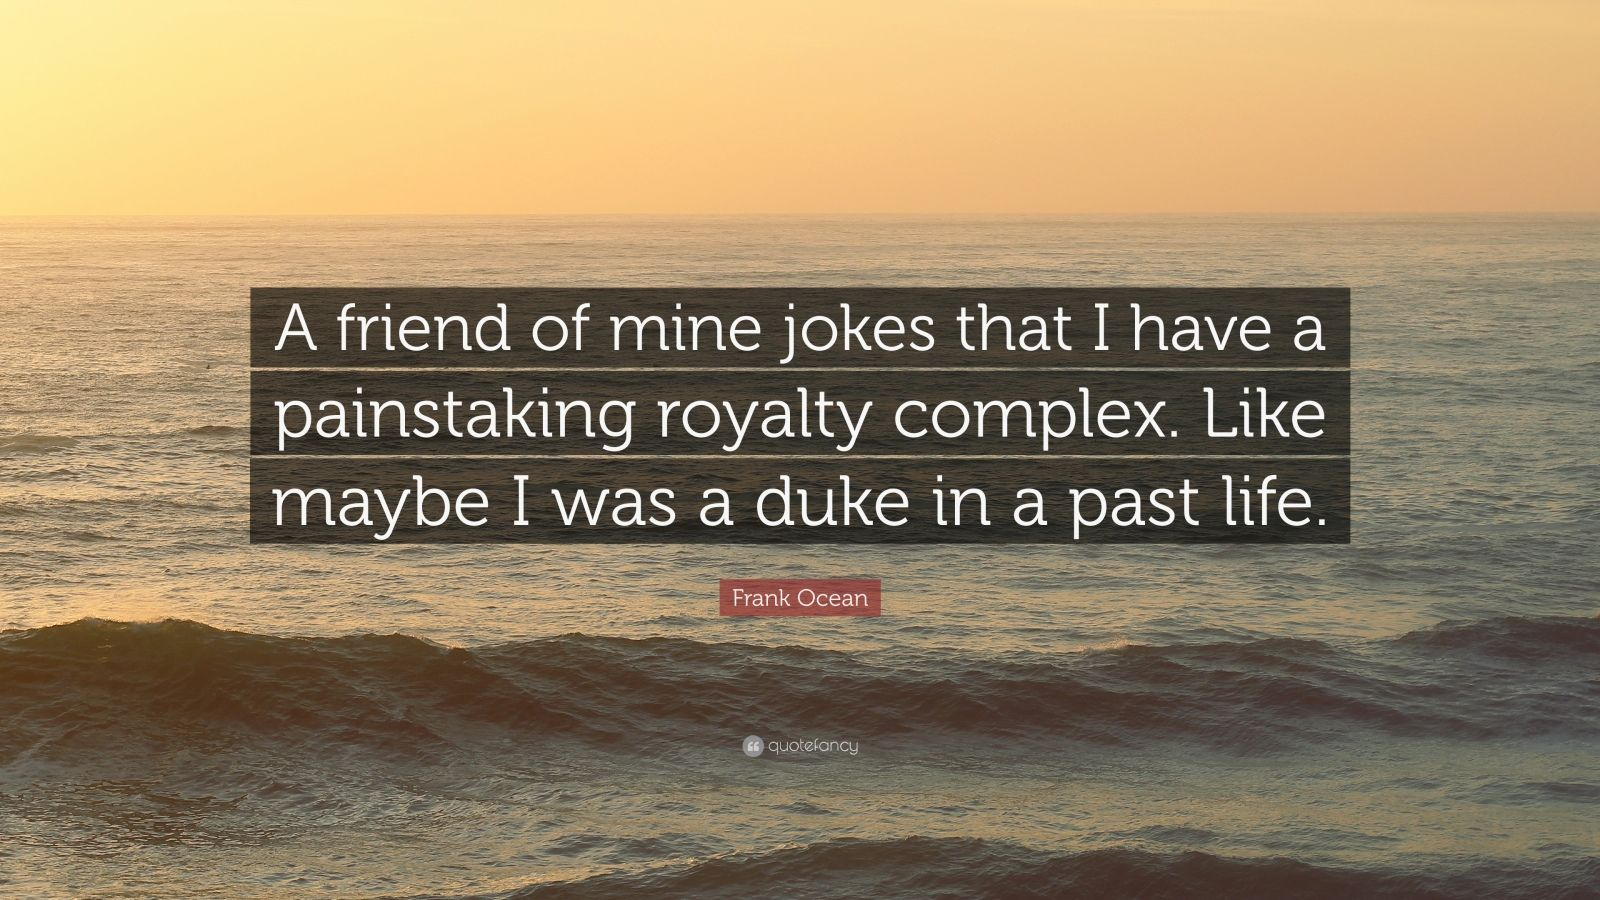 """Frank Ocean Quote: """"A friend of mine jokes that I have a painstaking royalty complex. Like maybe I was a duke in a past life."""""""